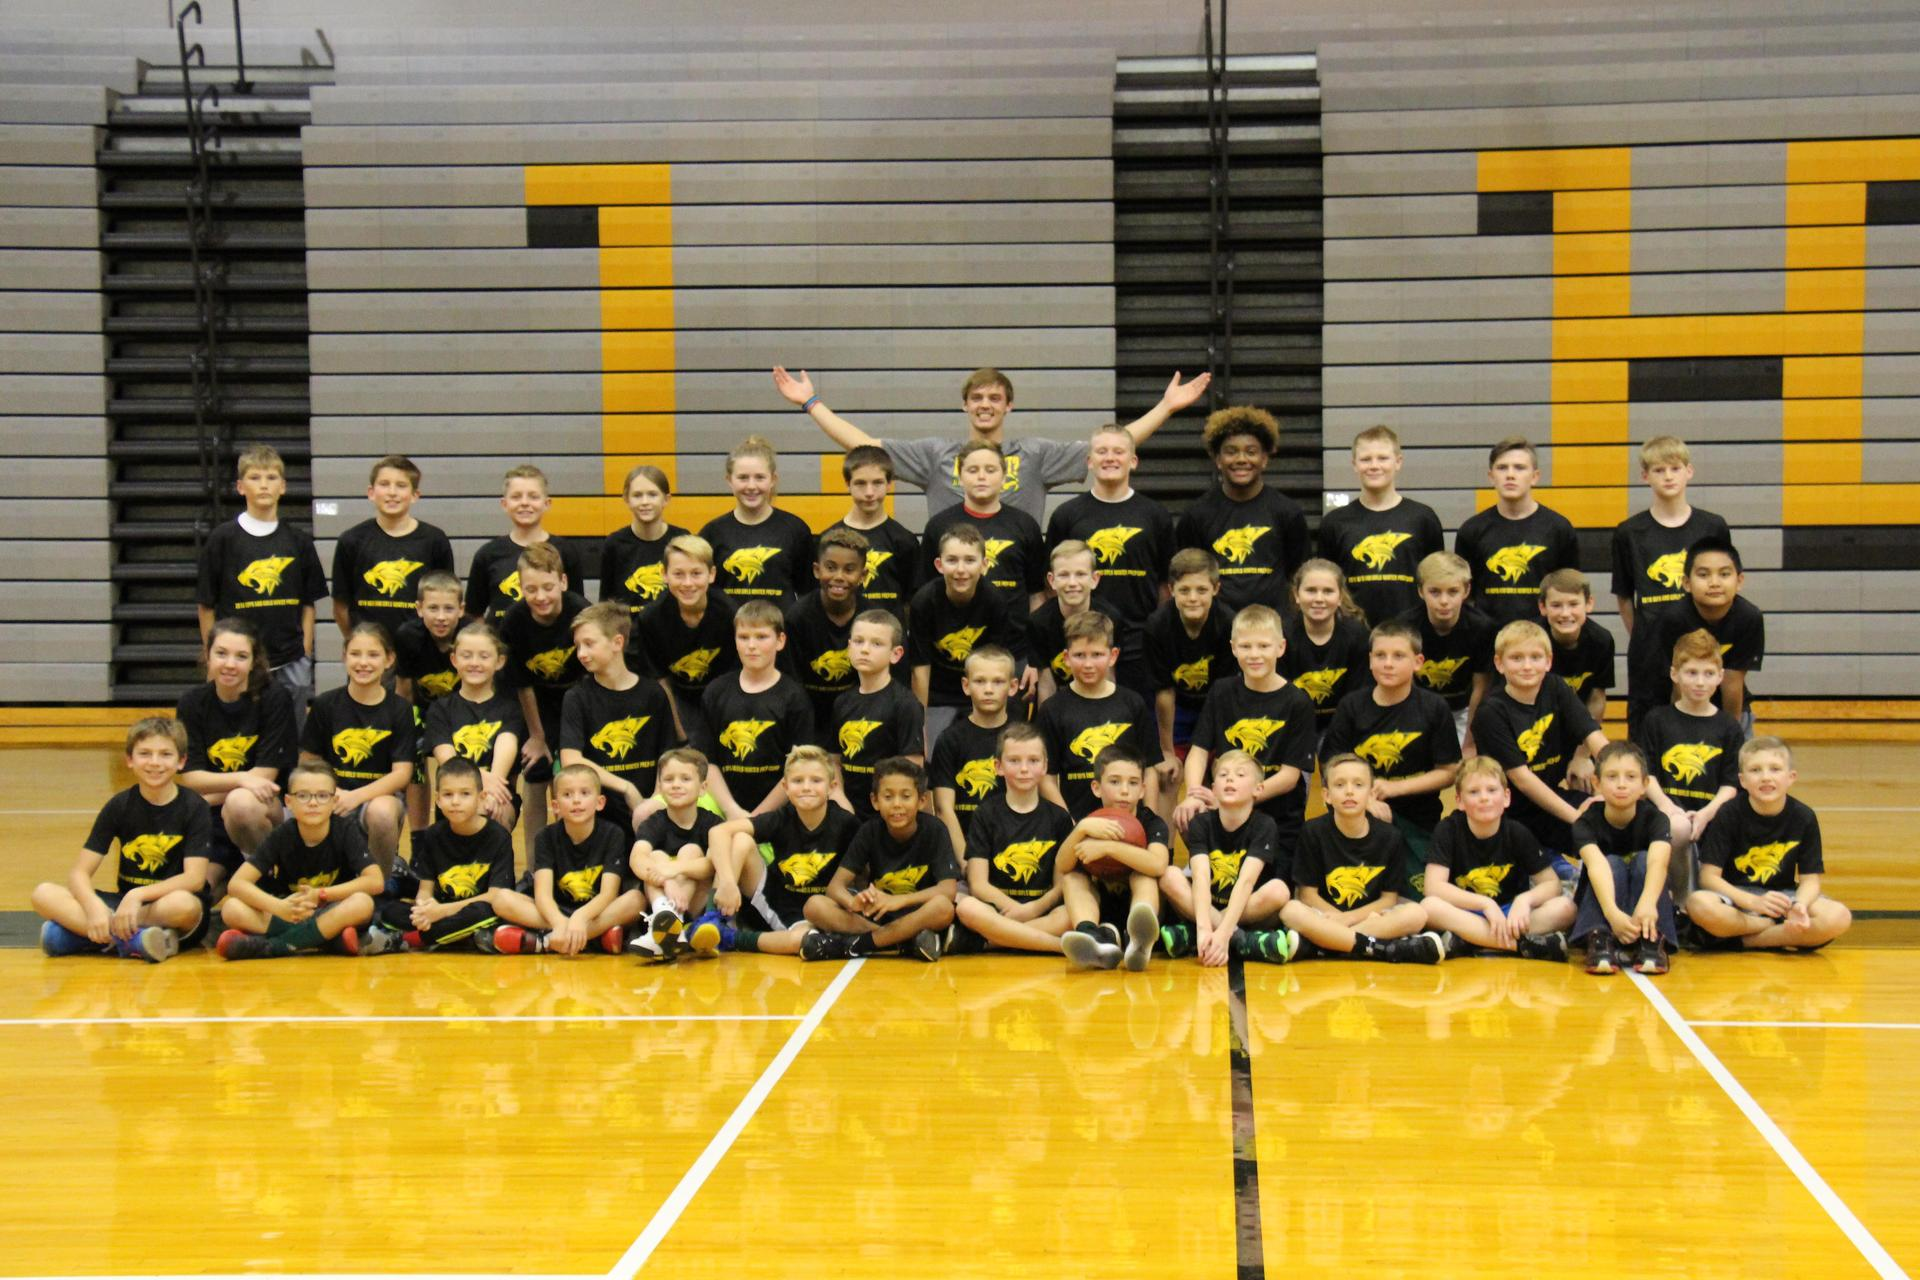 Students posing for group basketball camp photo